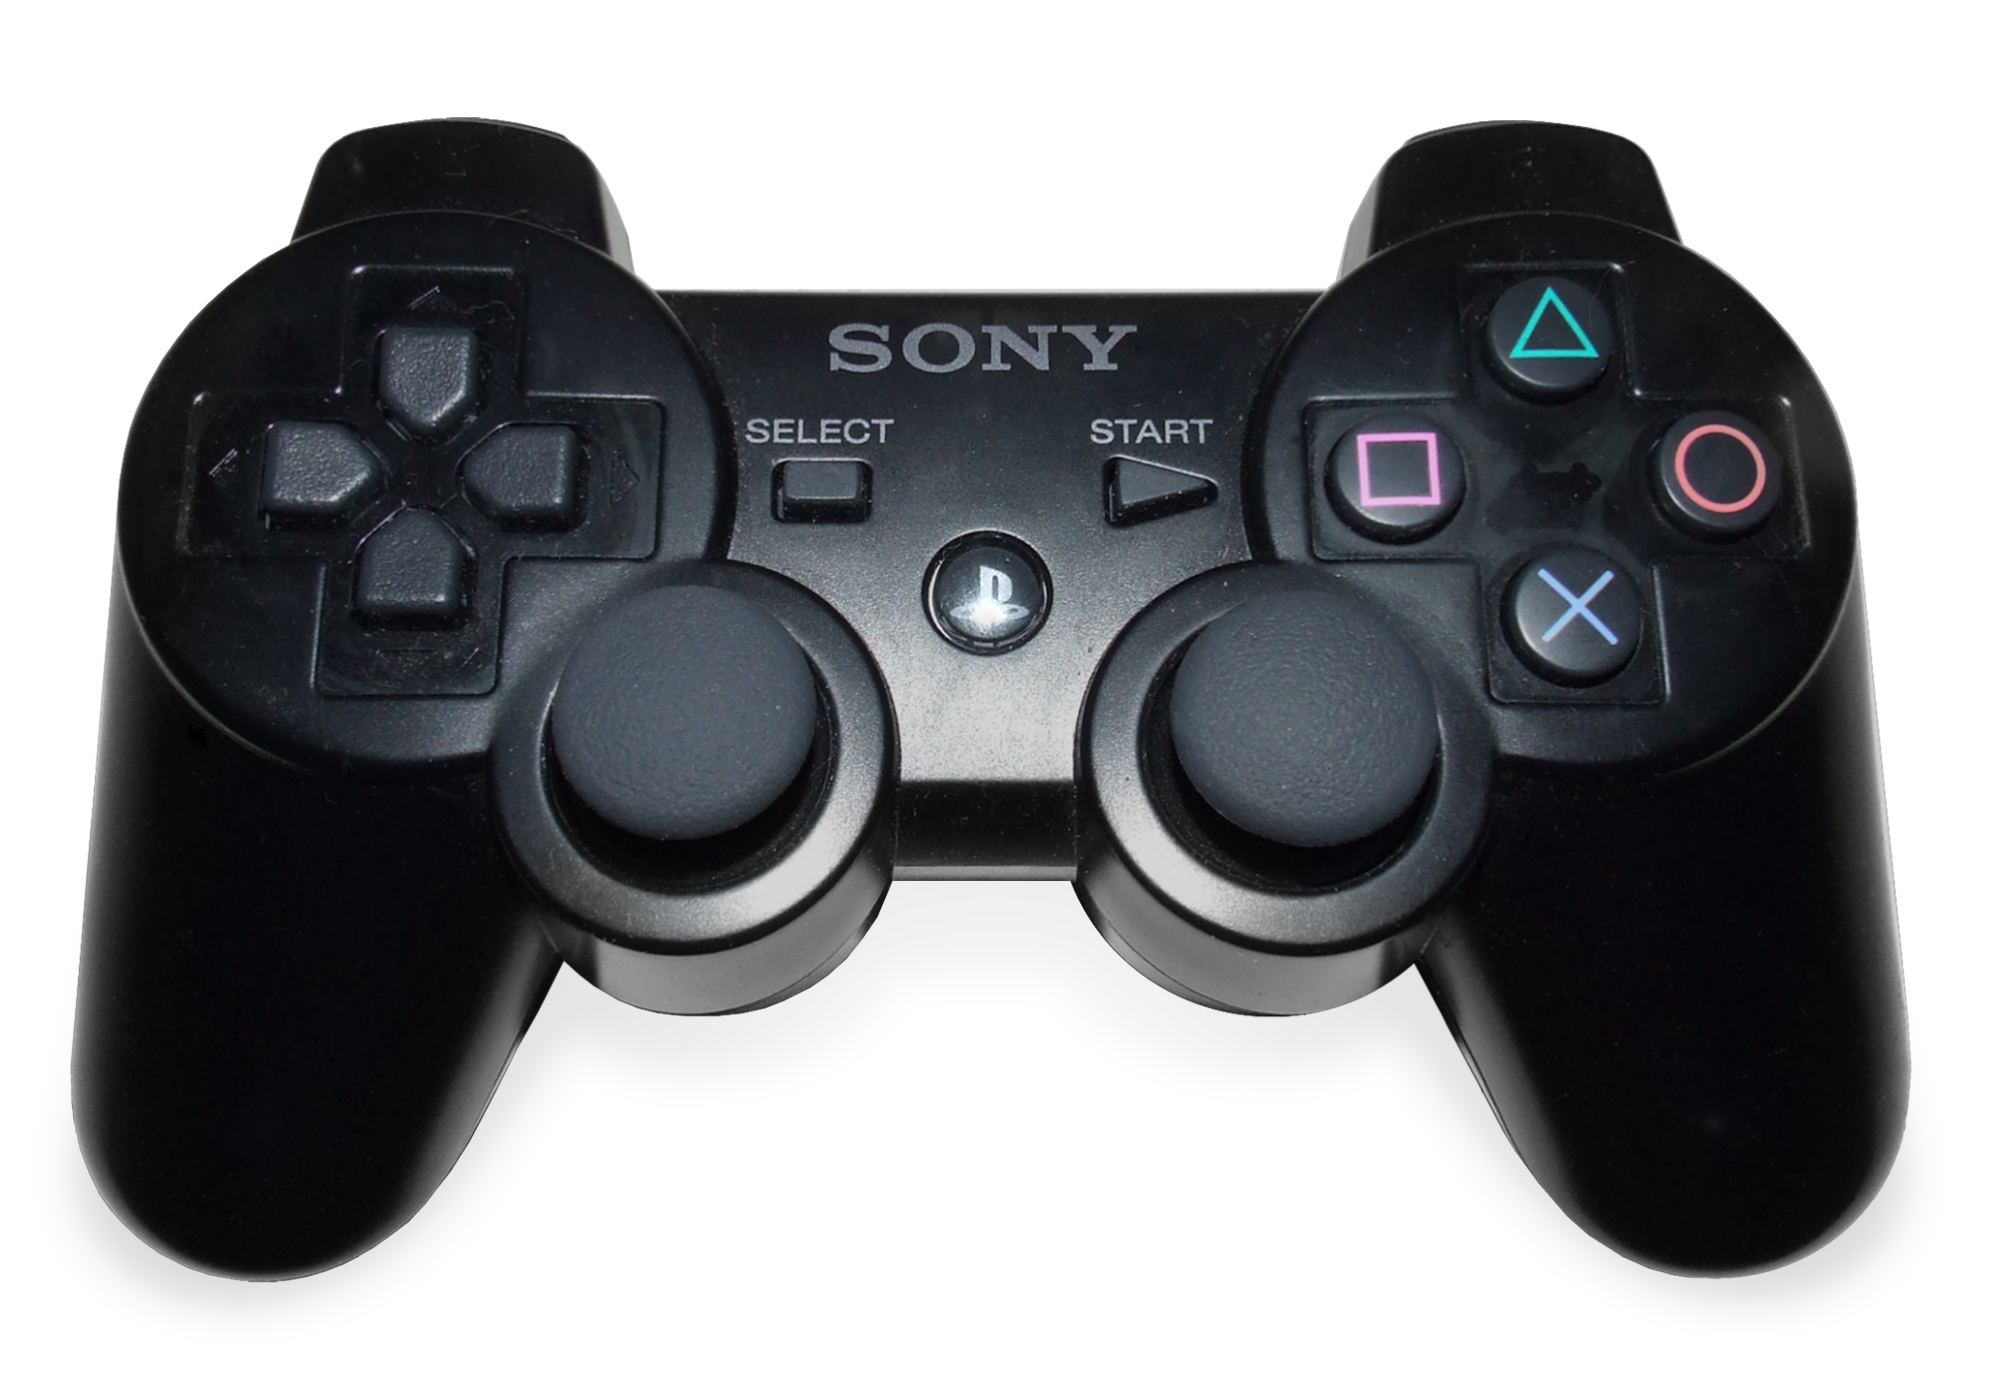 http://upload.wikimedia.org/wikipedia/commons/7/76/PlayStation_3_SIXAXIS_controller.png